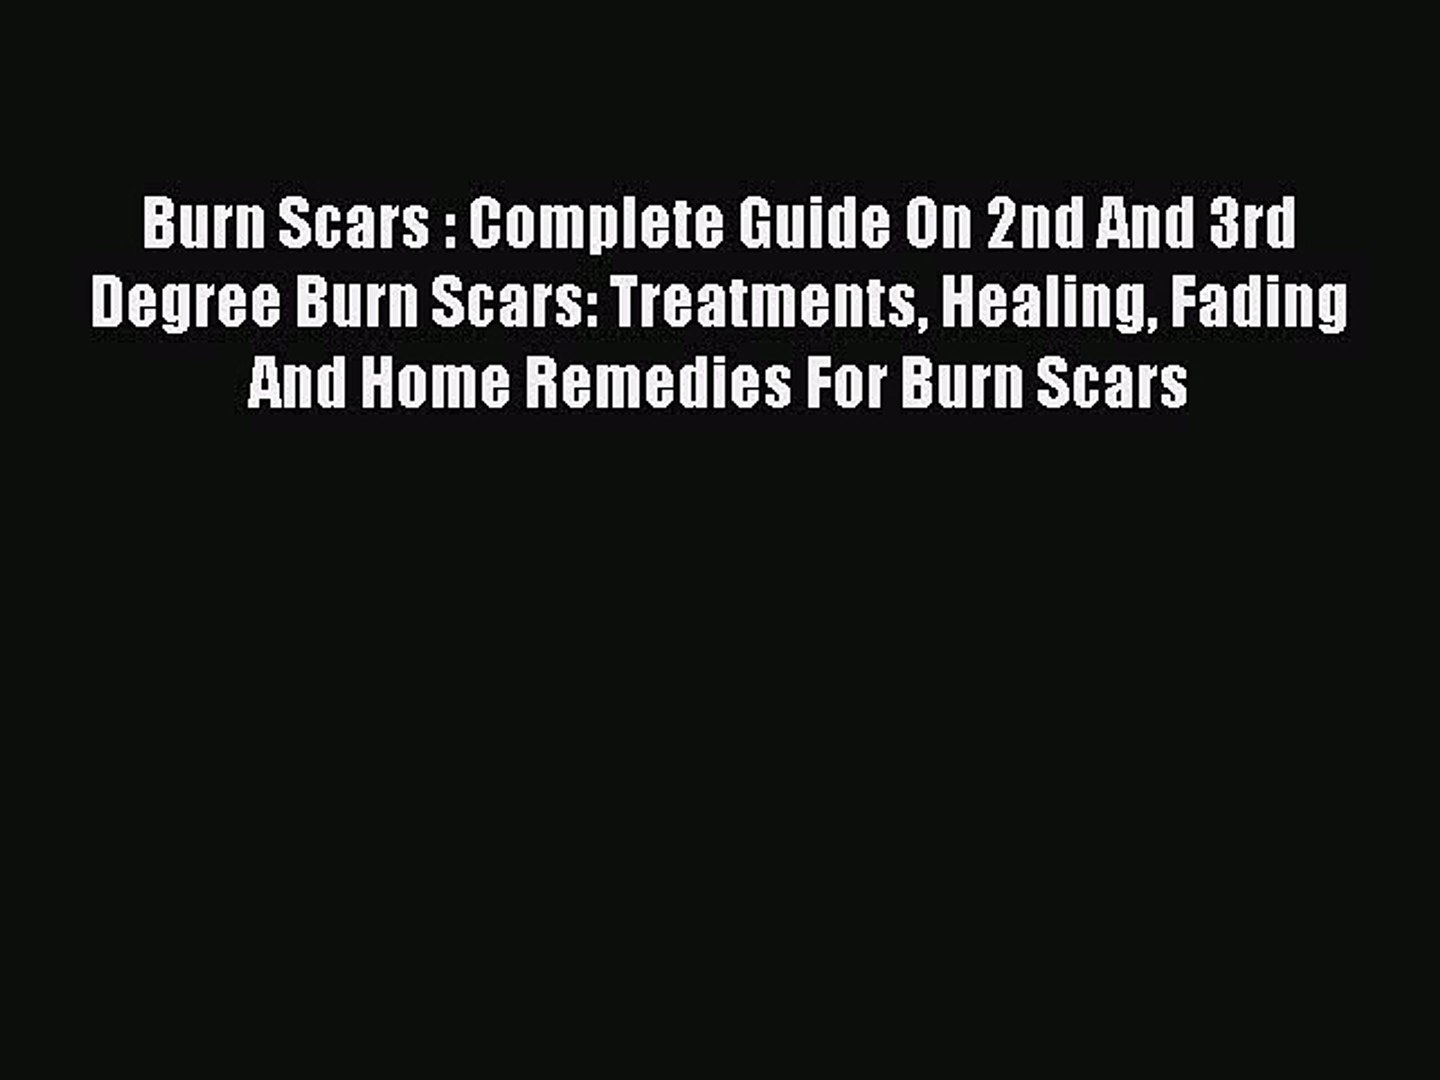 Read Burn Scars : Complete Guide On 2nd And 3rd Degree Burn Scars: Treatments Healing Fading